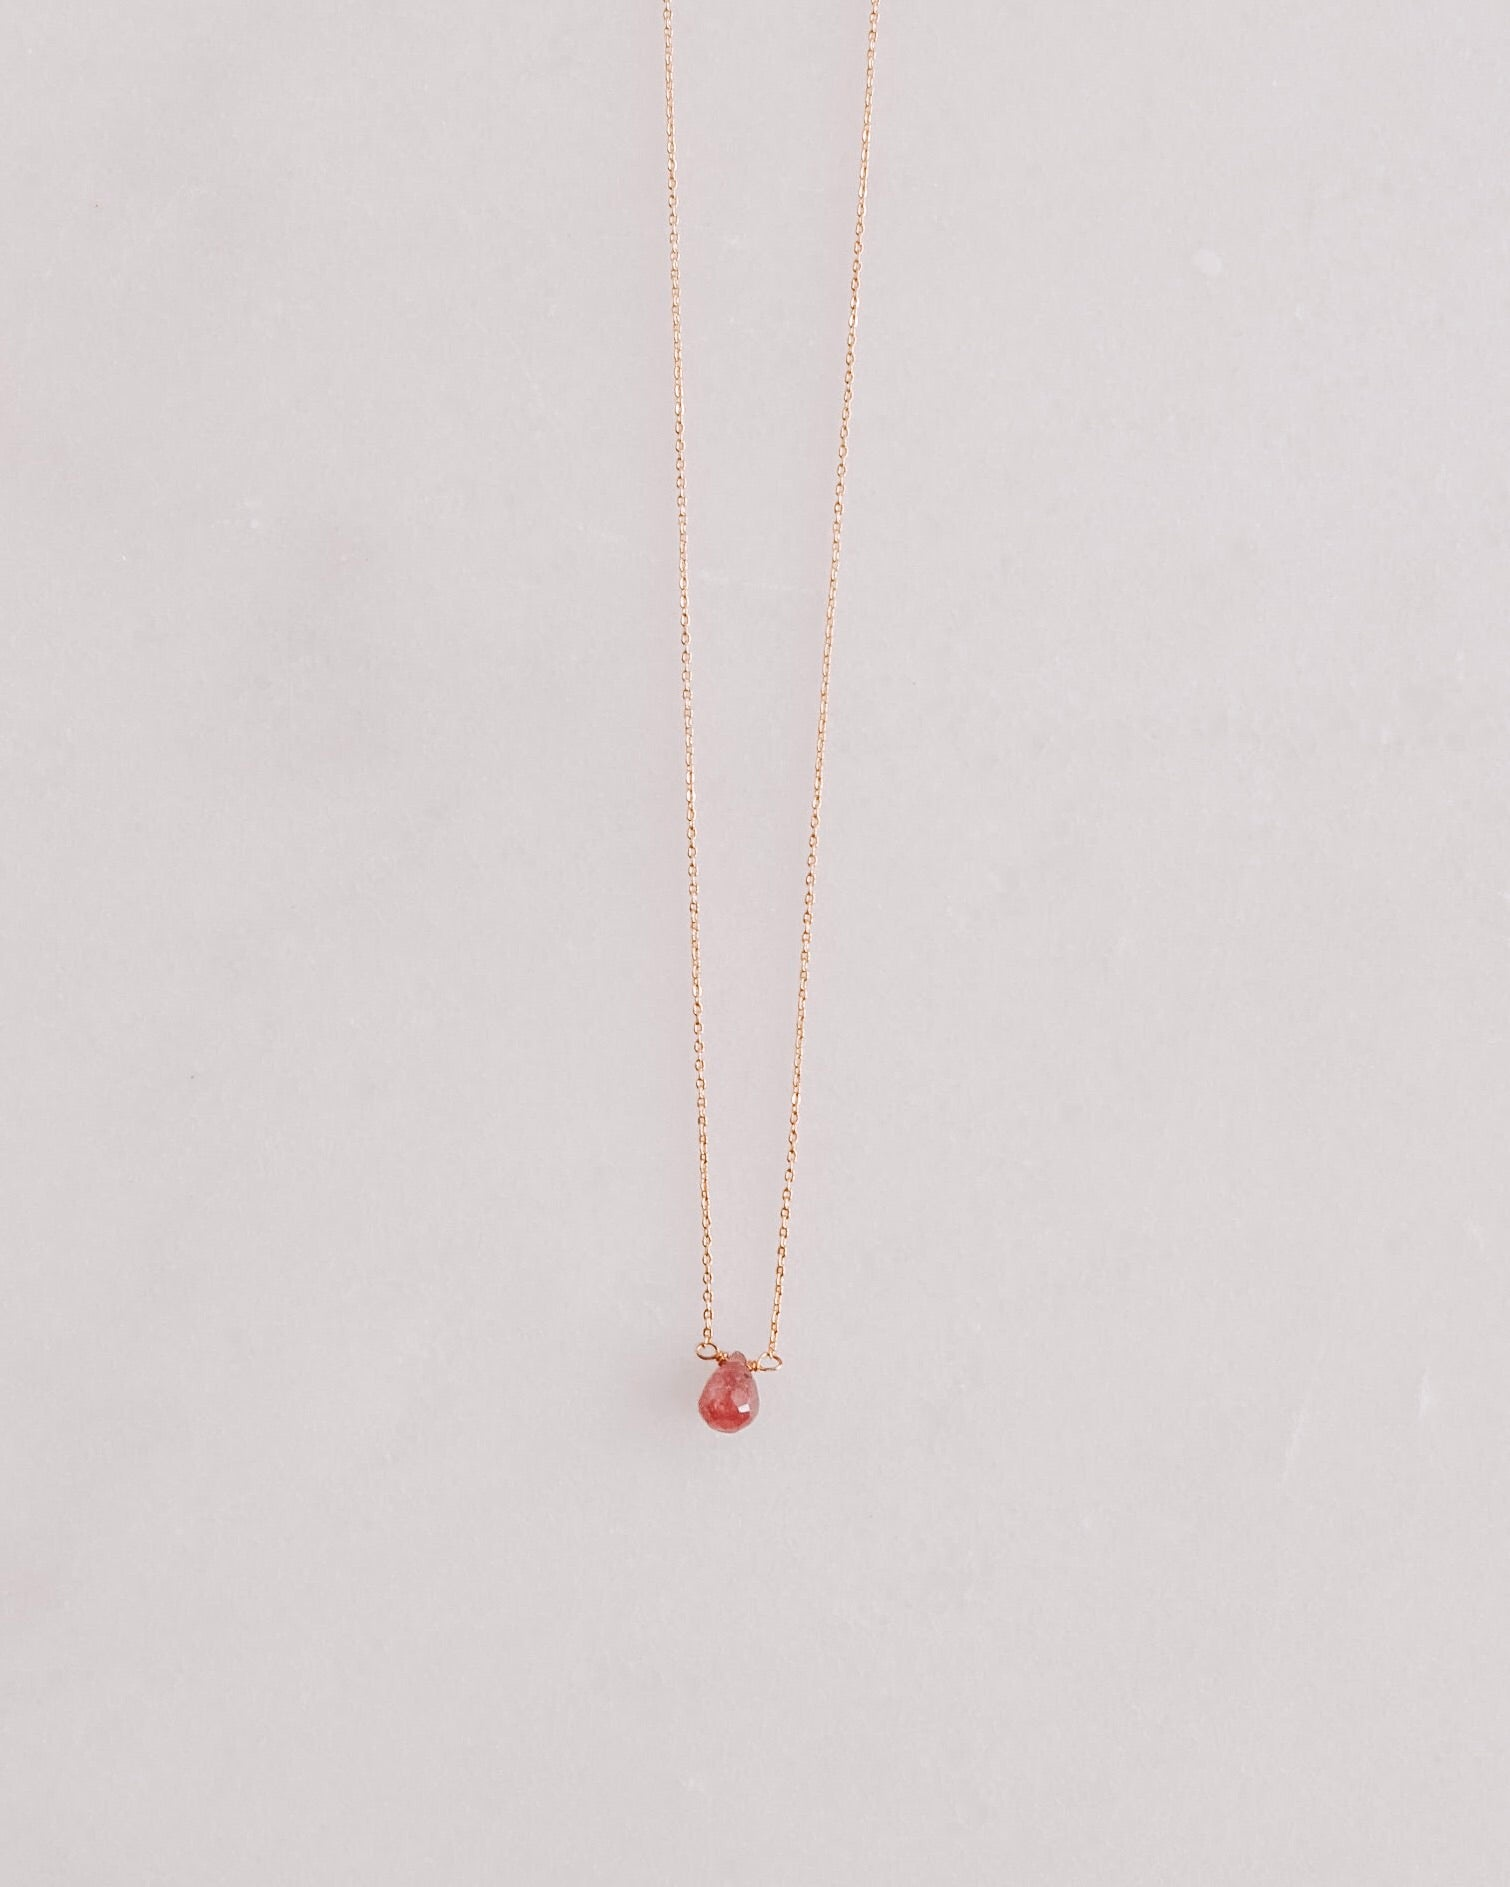 Ruby Tear Necklace